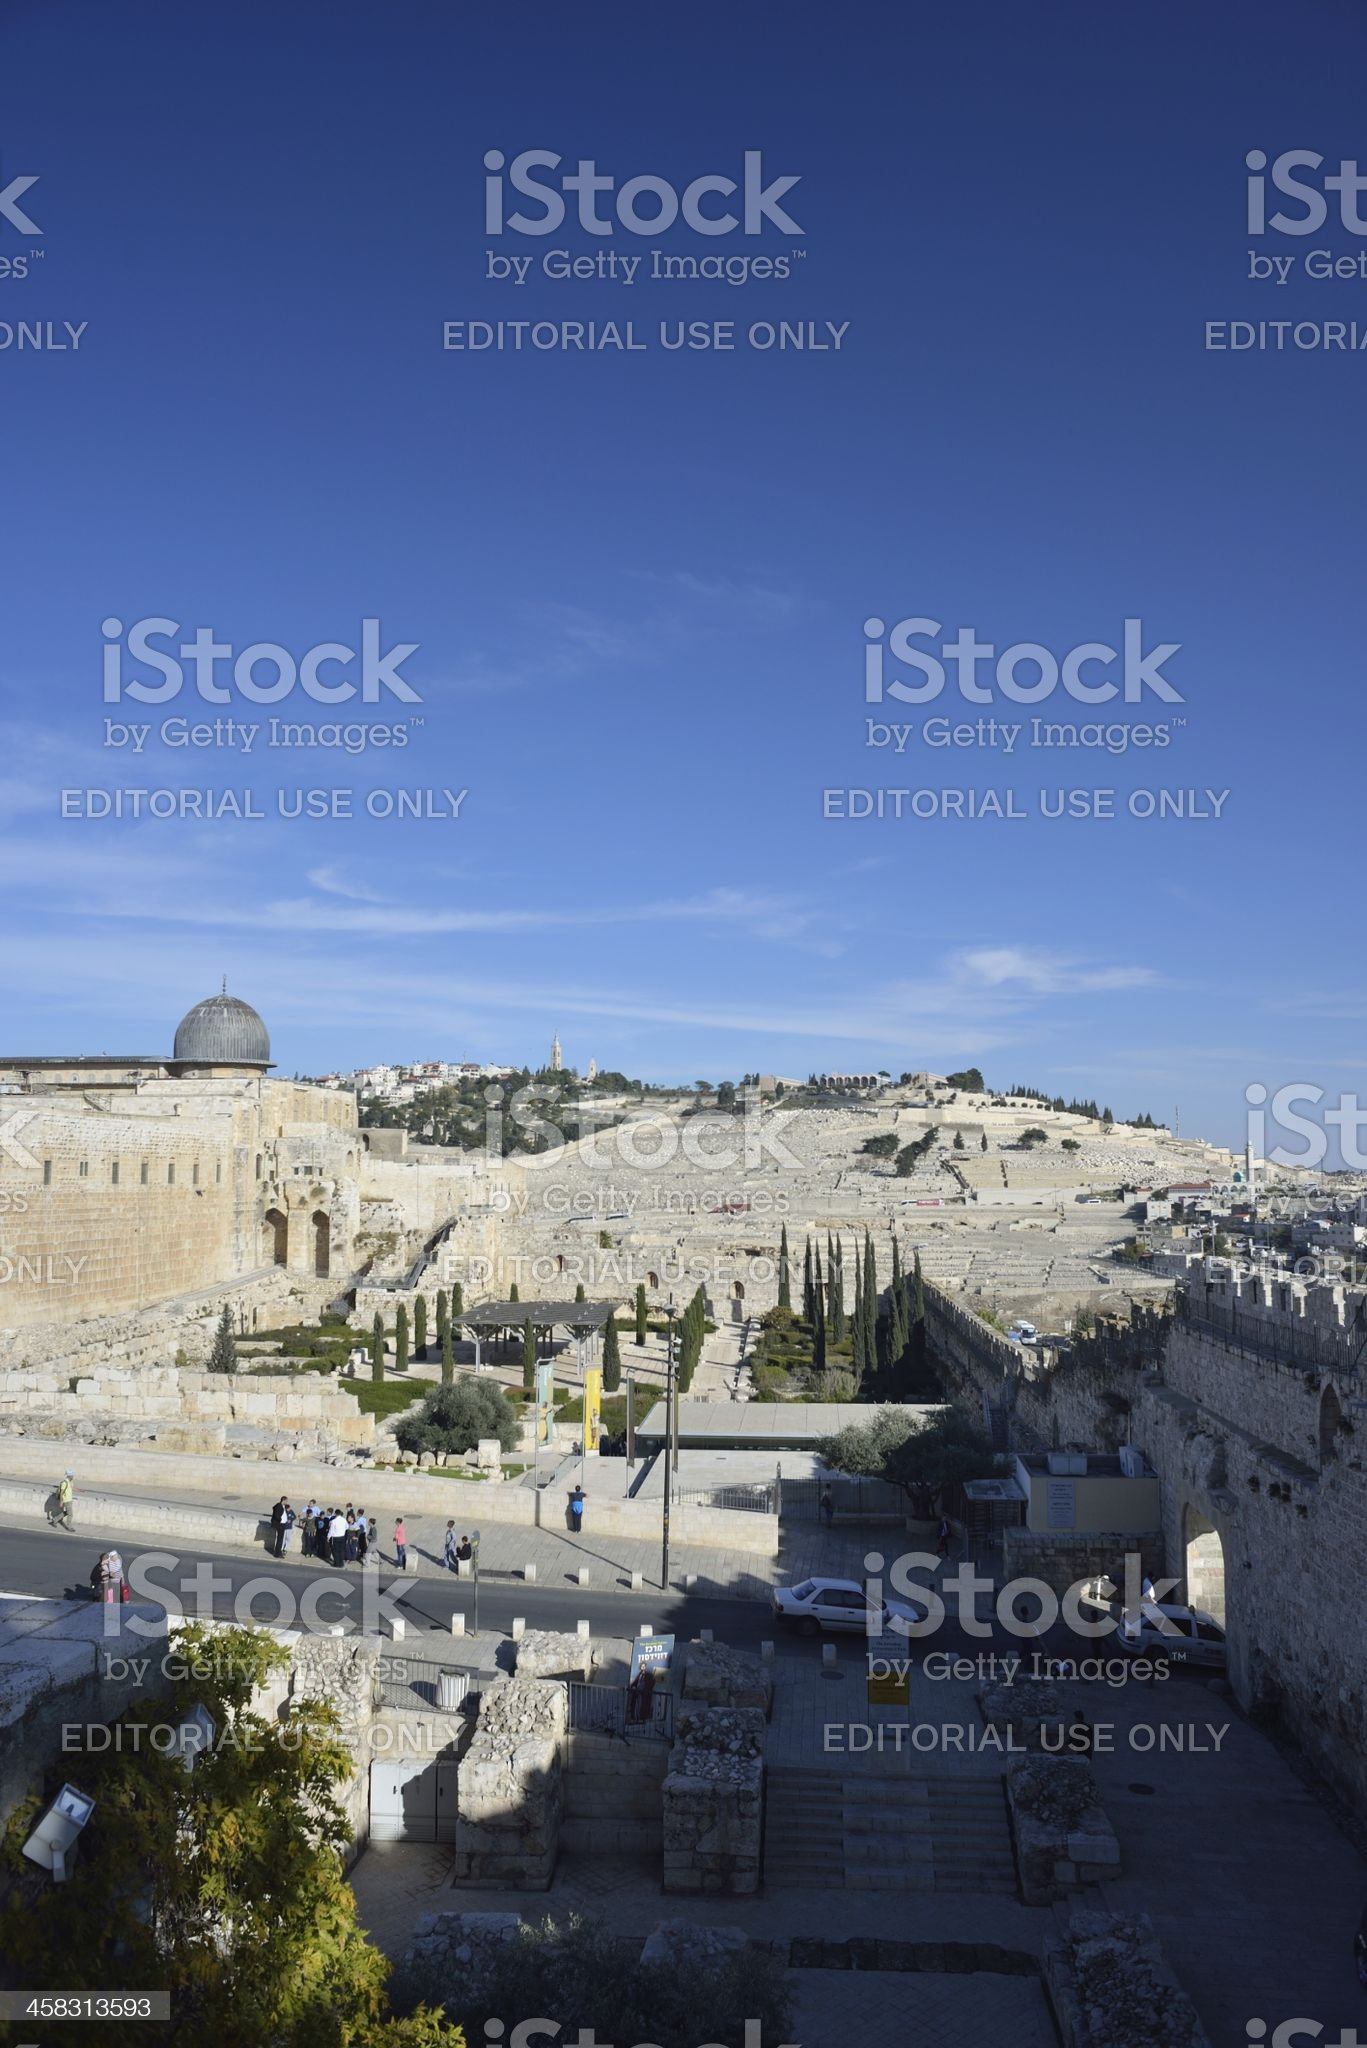 Al Aqsa and Dung gate in Old City Jerusalem royalty-free stock photo